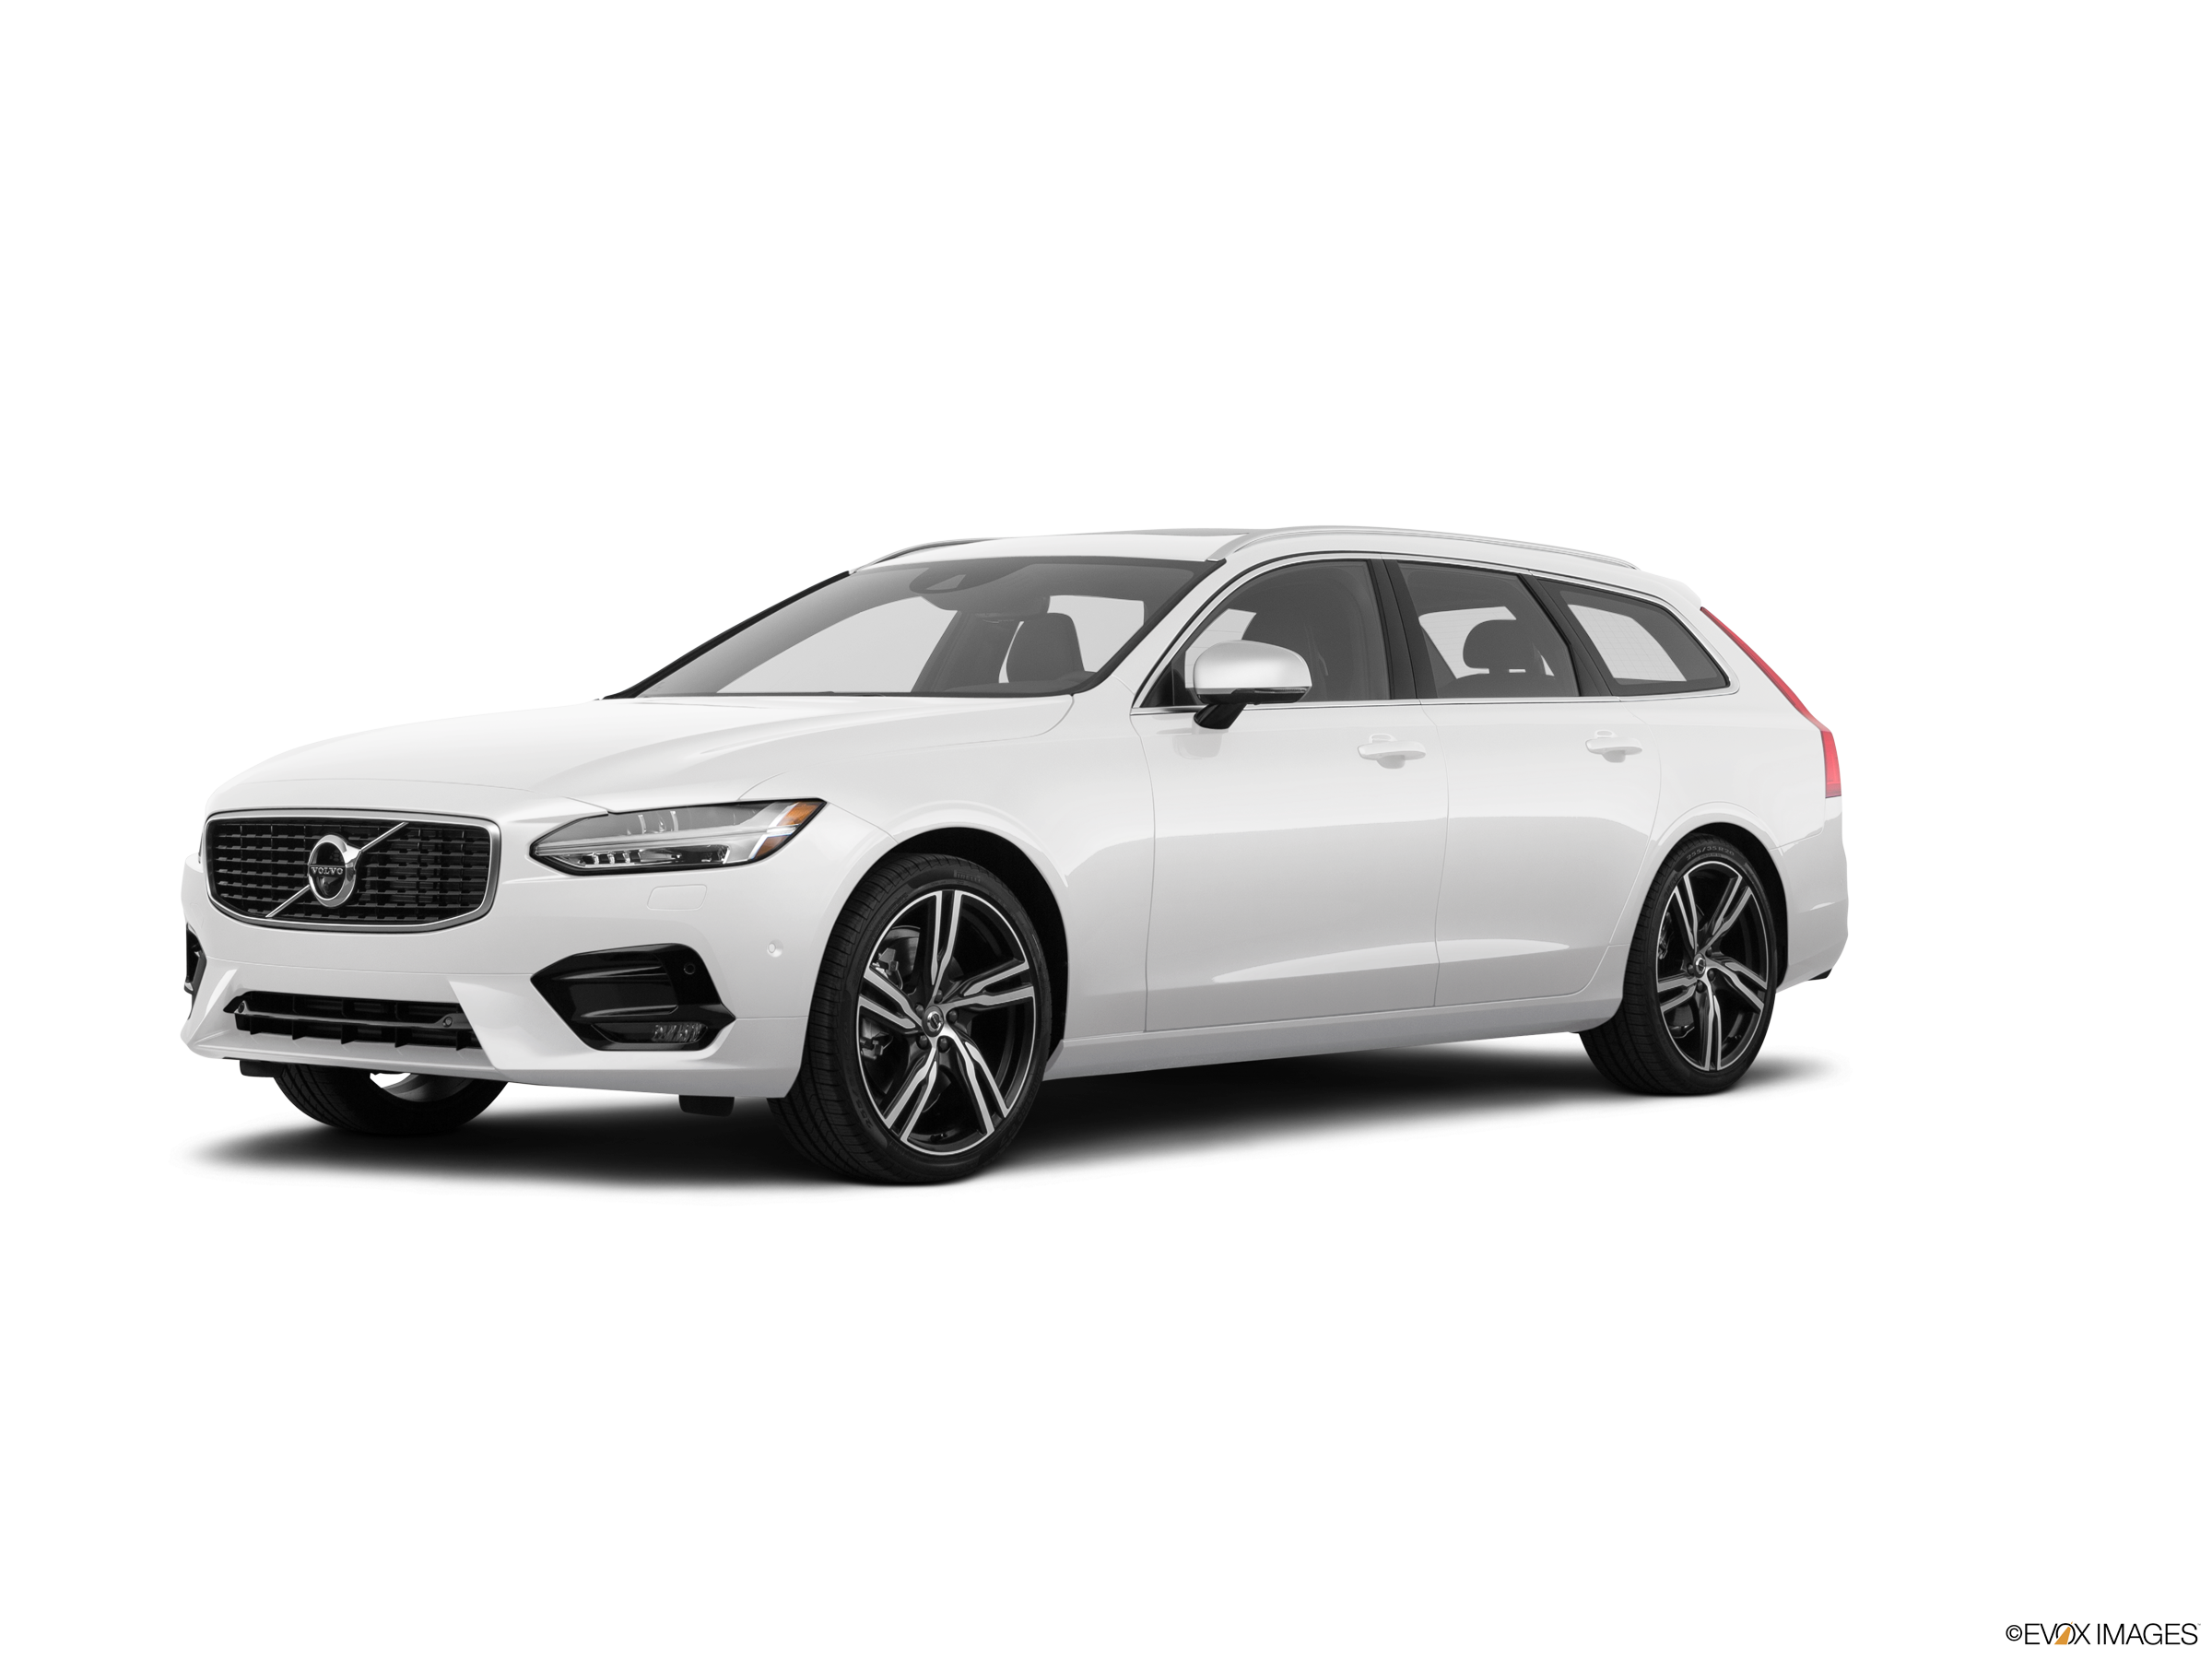 Highest Horsepower Wagons of 2018 - 2018 Volvo V90